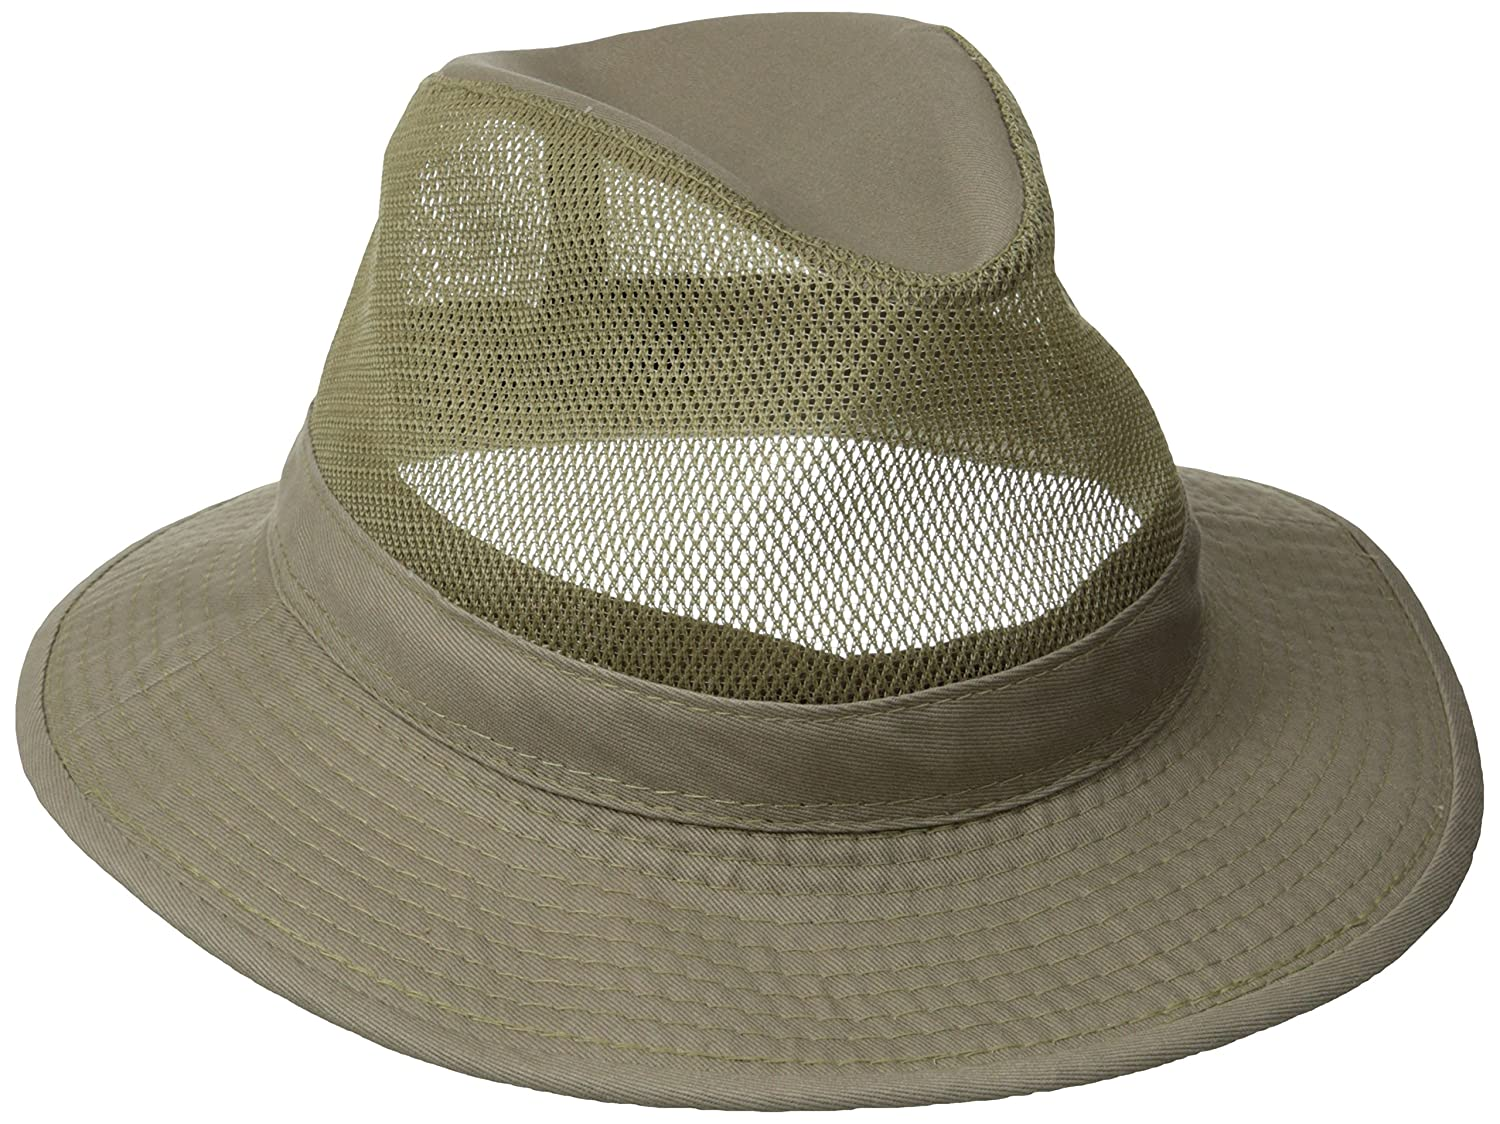 Dorfman Pacific Men's Garment Washed Twill Safari Hat With Mesh Sides 863M